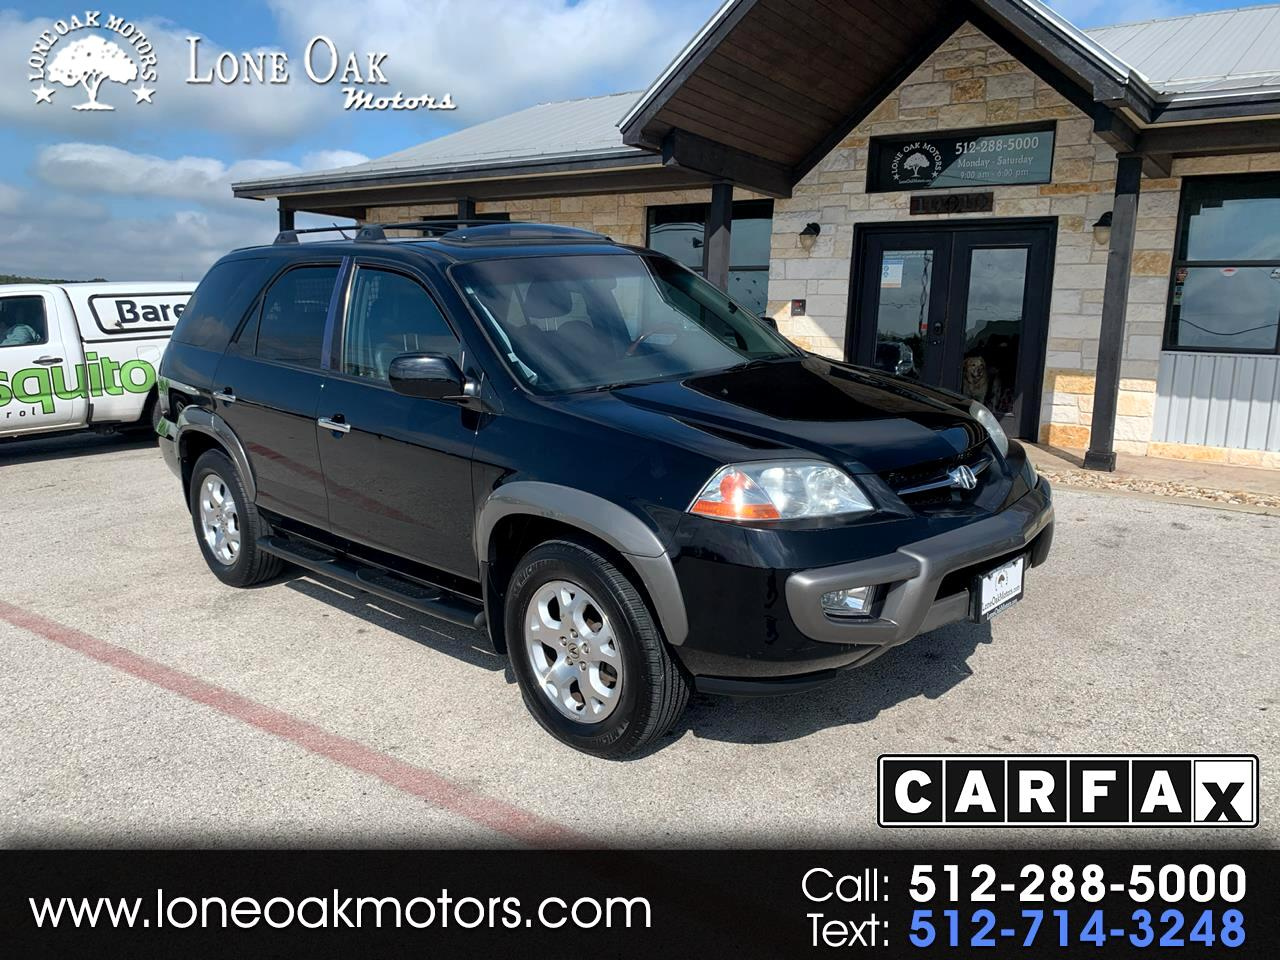 used cars for sale austin tx 78736 lone oaks motors austin tx 78736 lone oaks motors